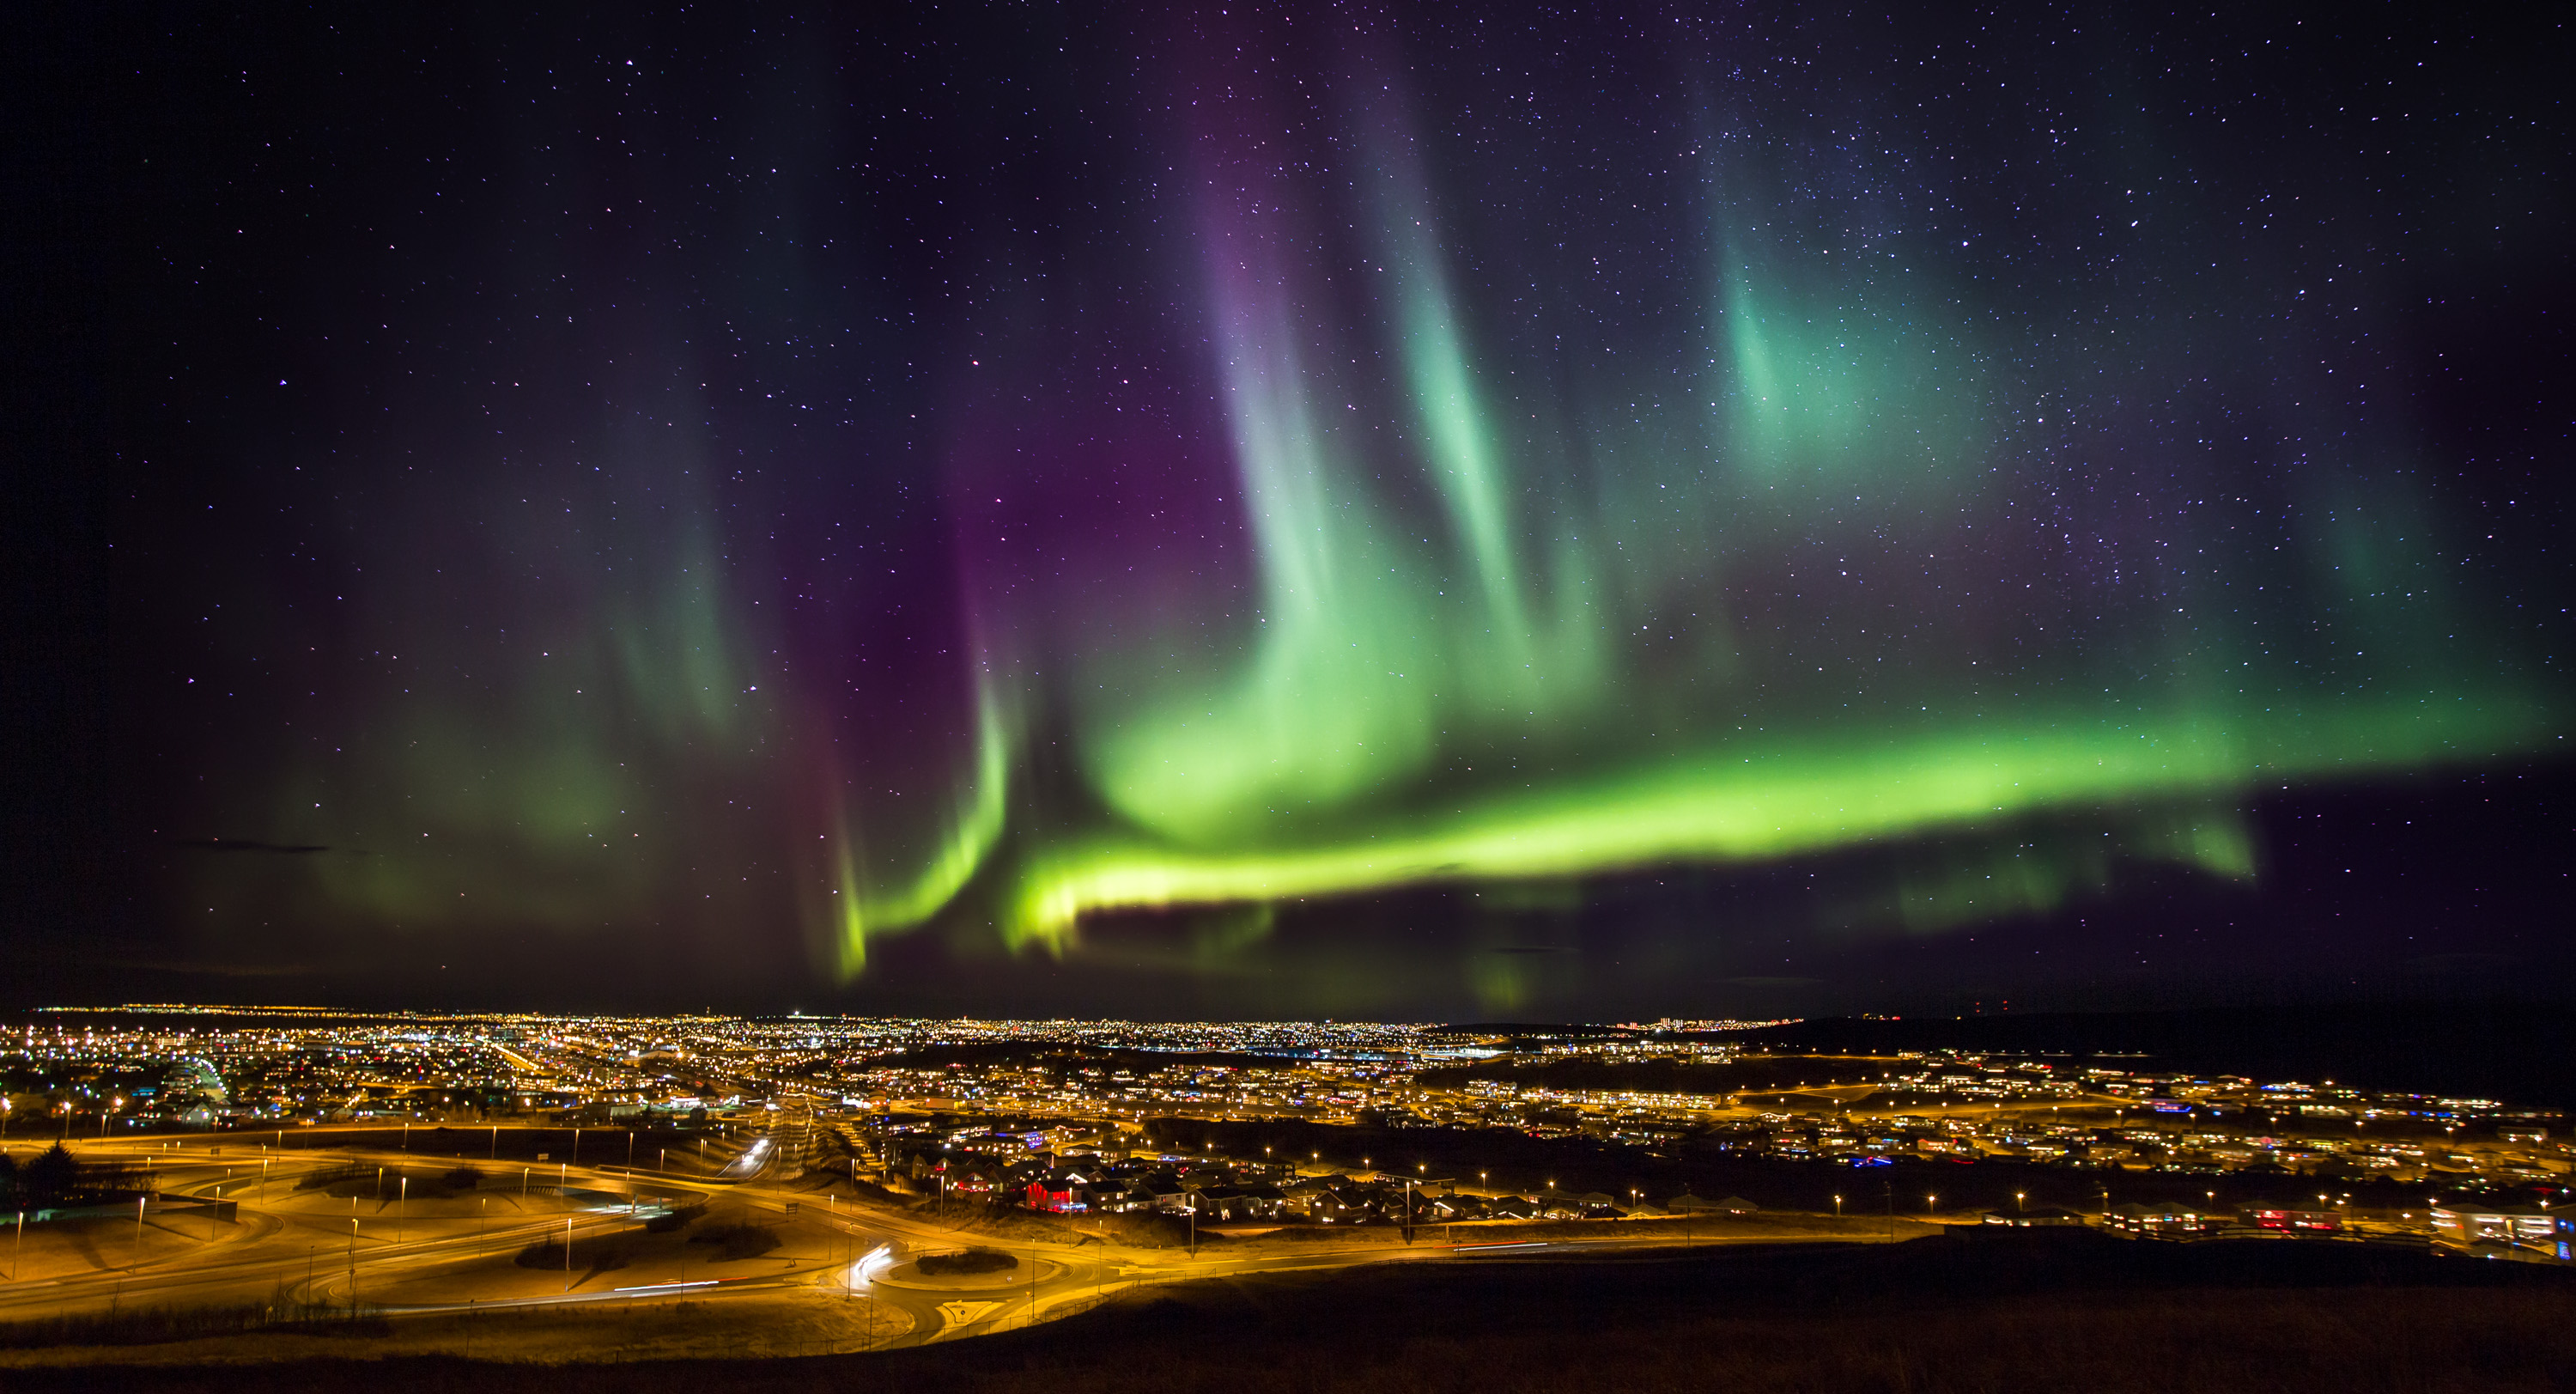 Credit: Iceland.is